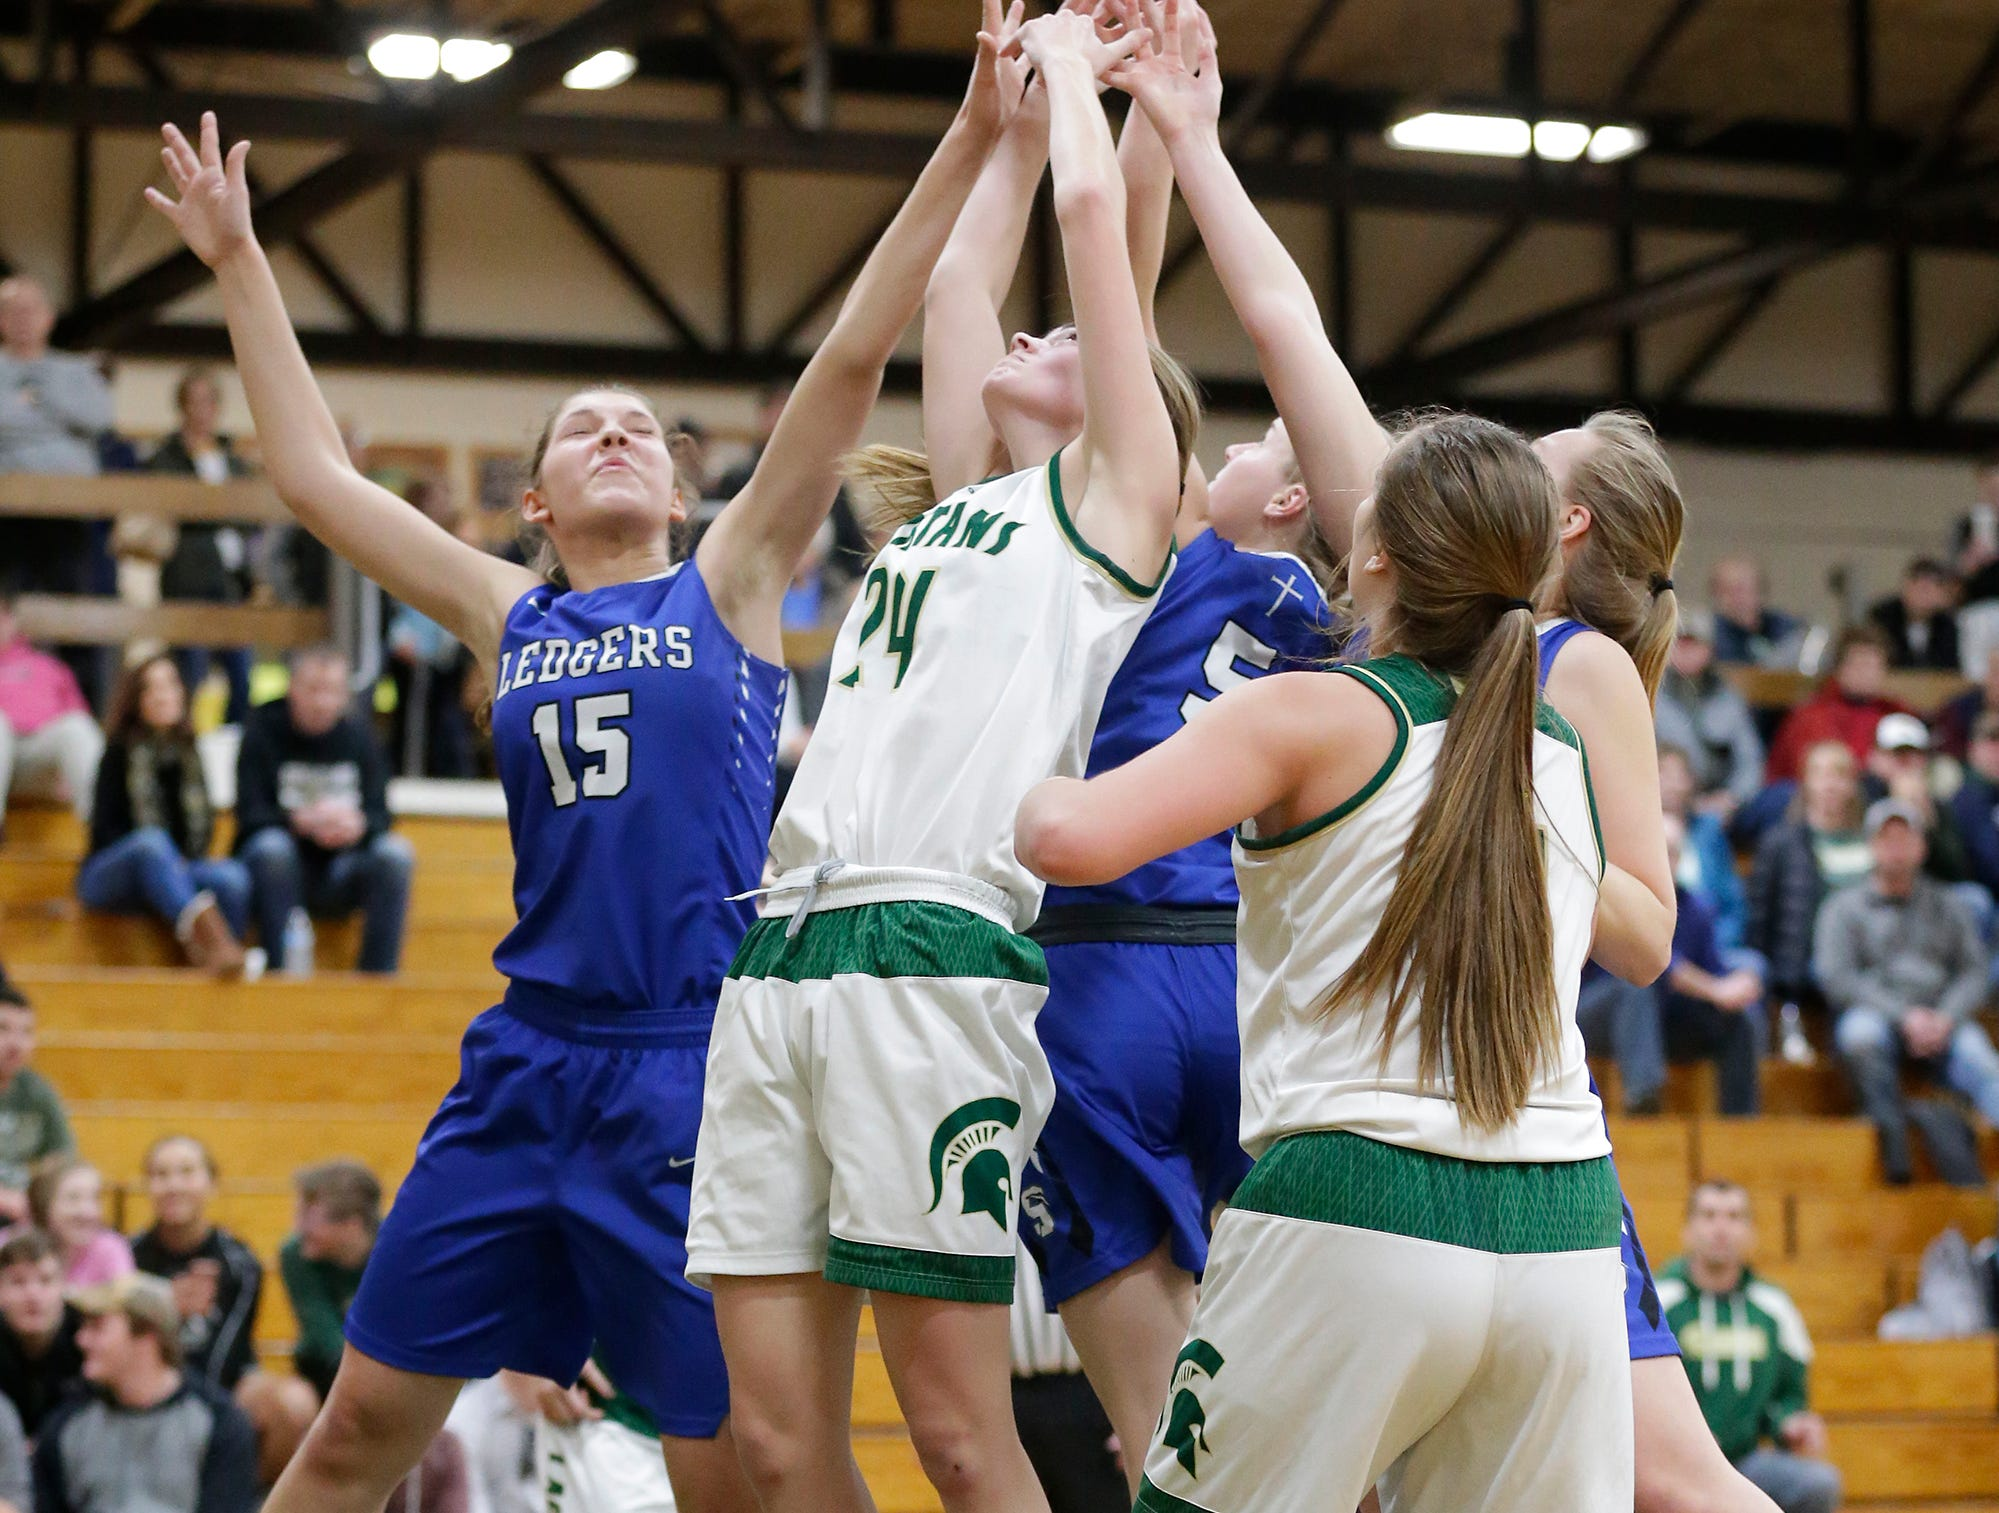 Laconia High School and St. Mary's Springs Academy girls basketball players reach for a rebound Tuesday, January 15, 2019 during their game in Rosendale. Laconia won the game 57-45. Doug Raflik/USA TODAY NETWORK-Wisconsin